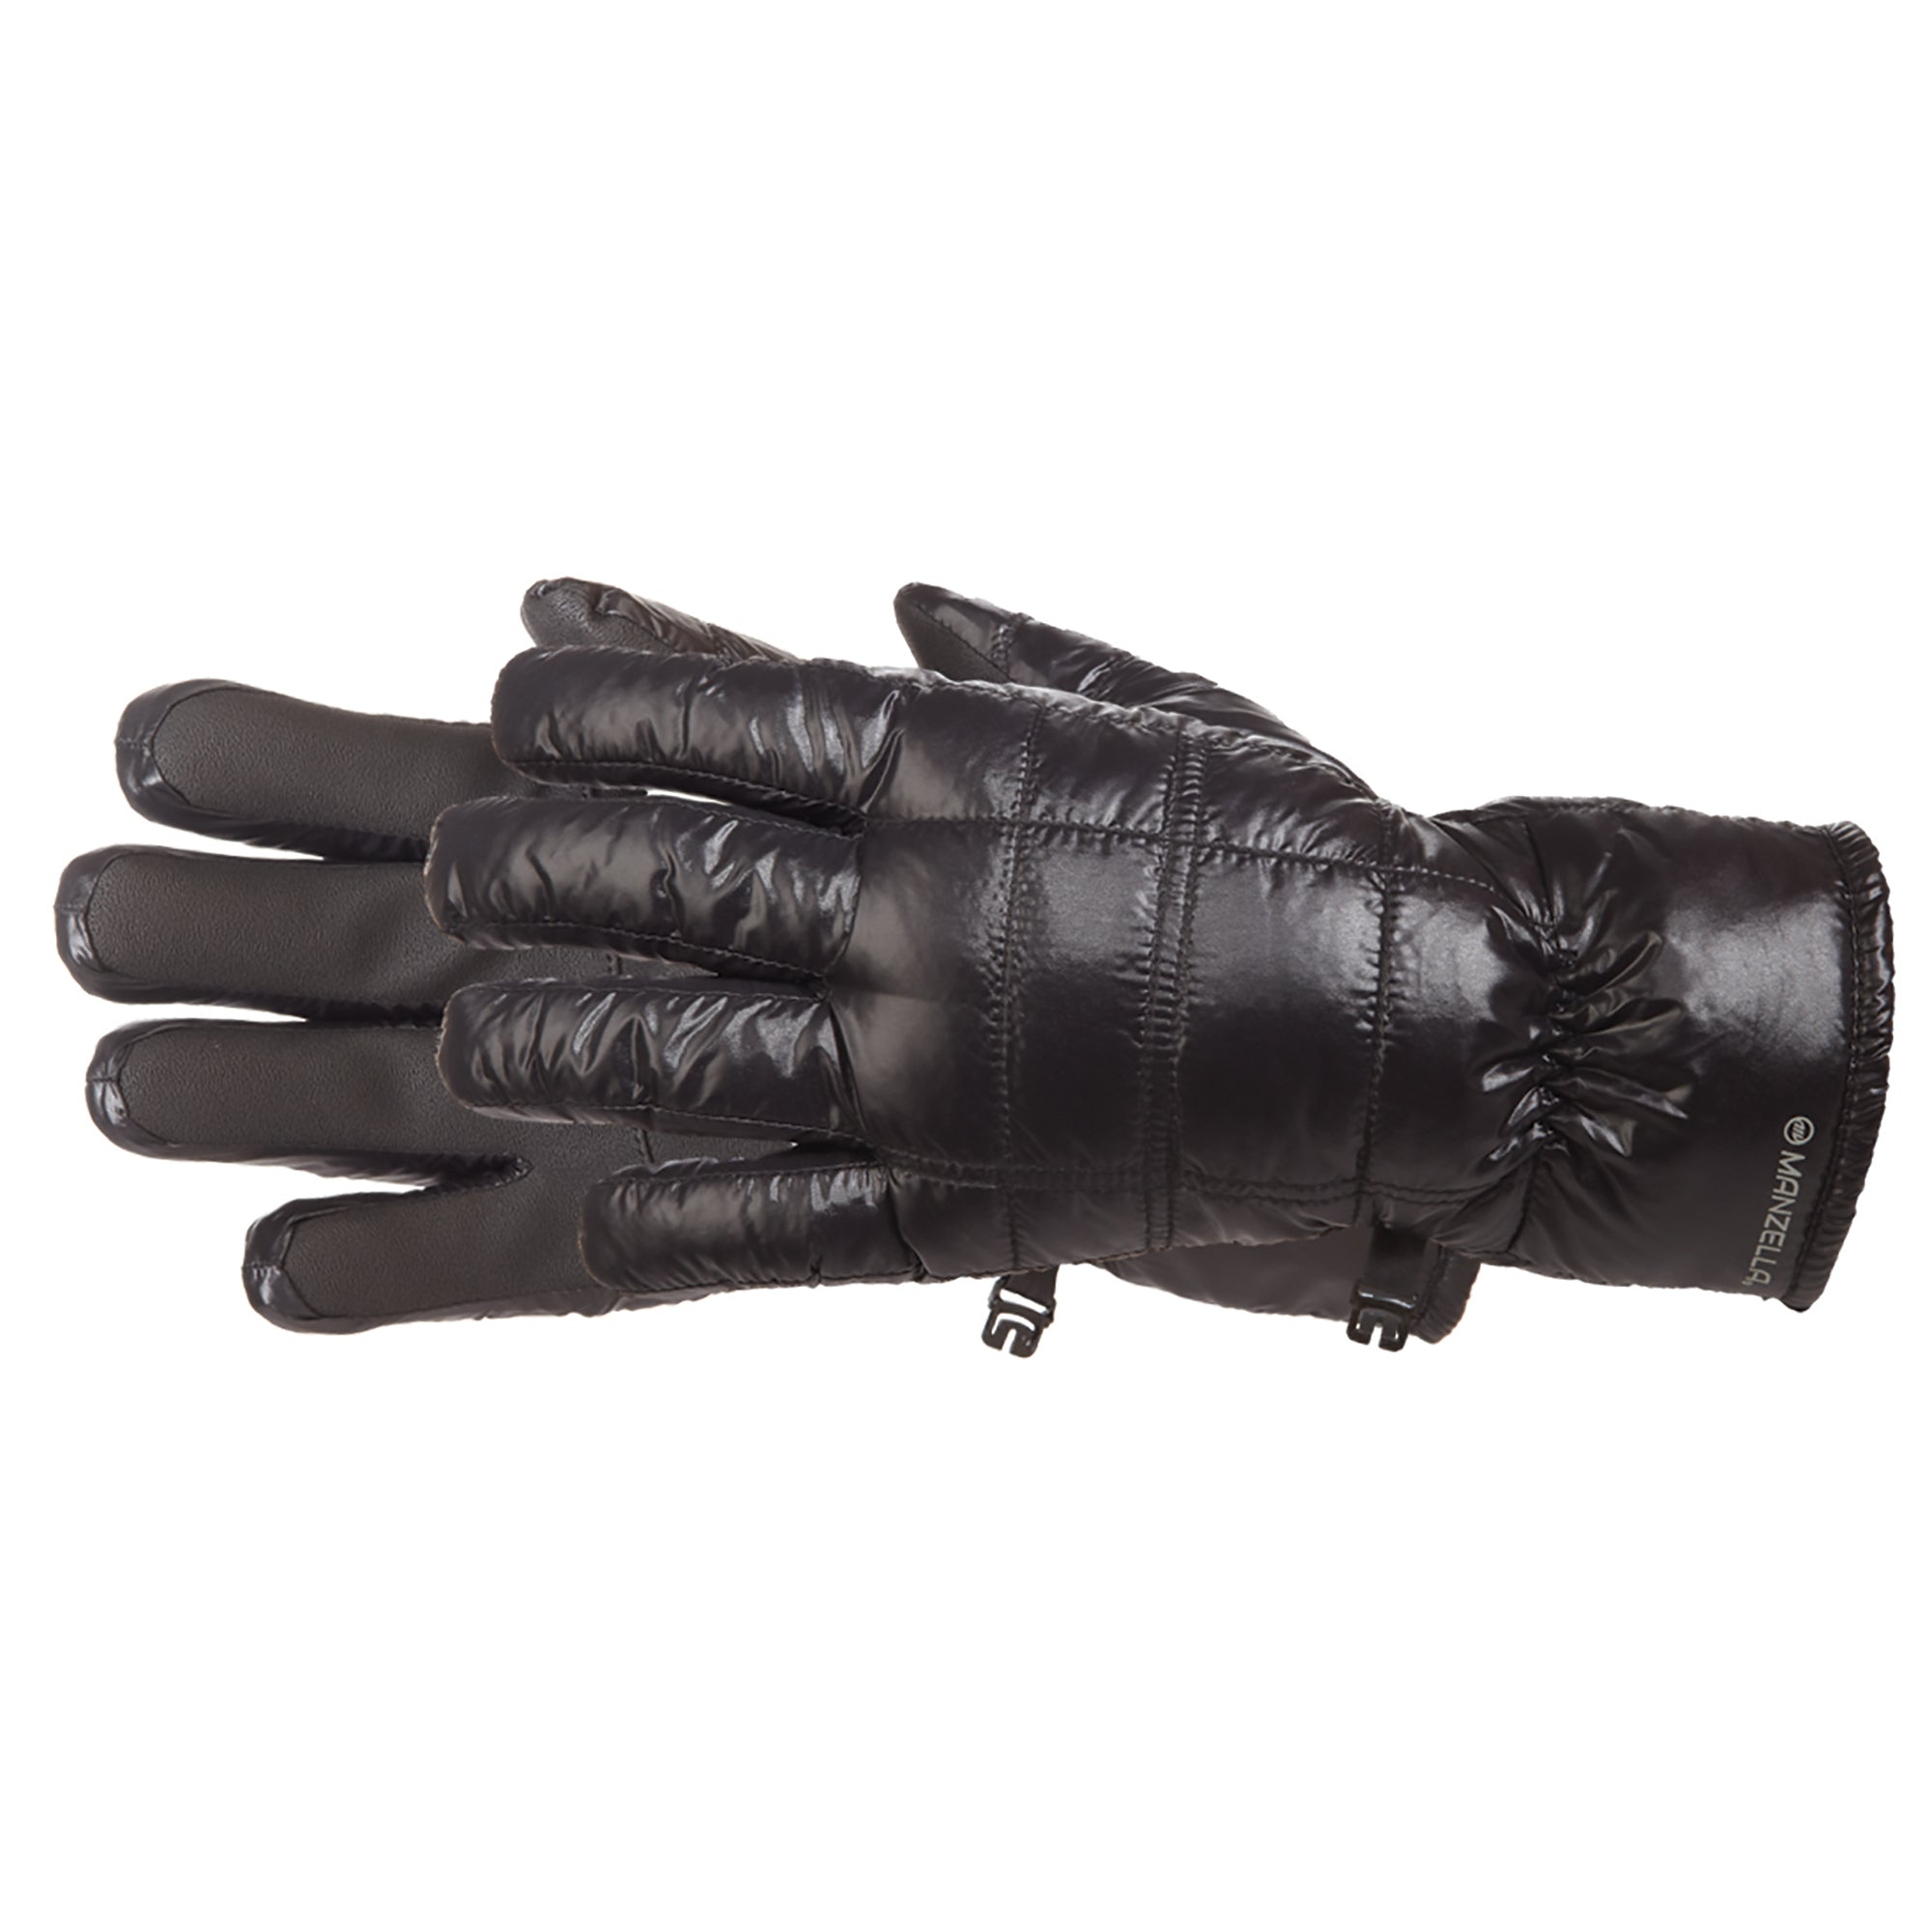 Manzella KULA Outdoor Gloves for Women